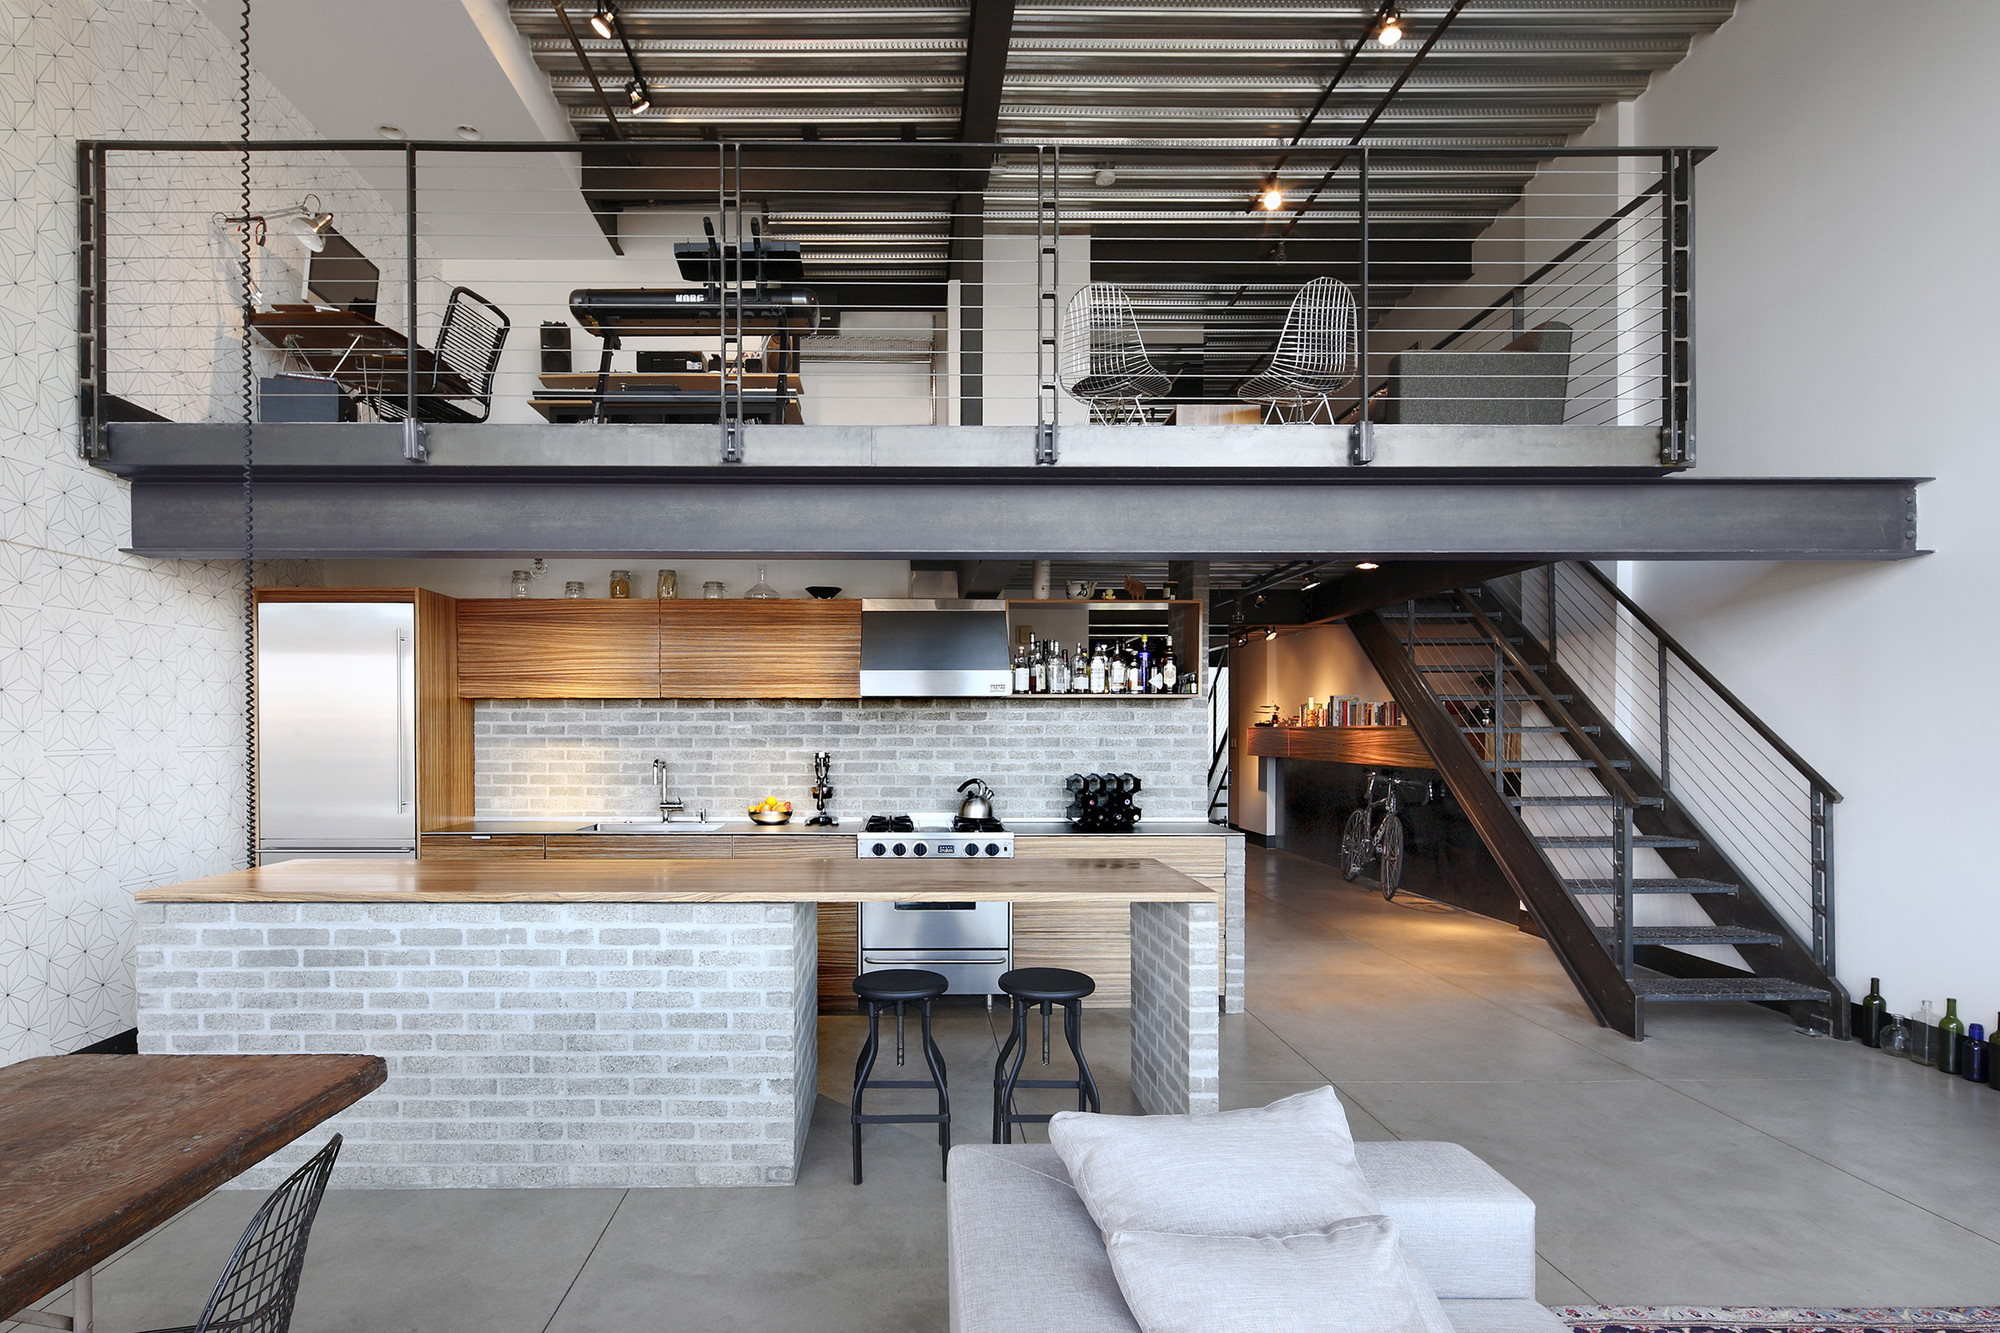 Capitol hill loft renovation shed architecture design for Architecture and design